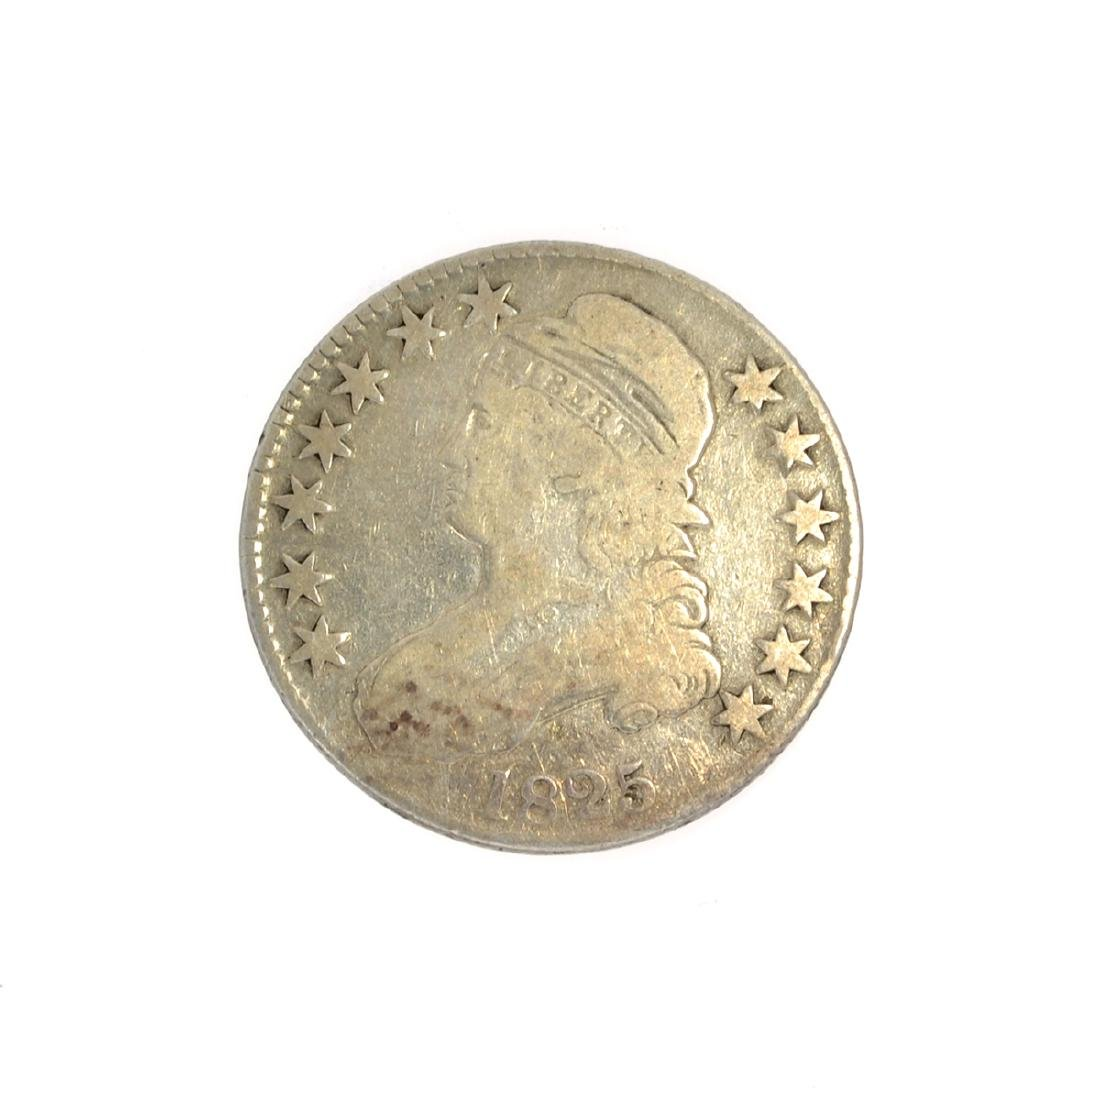 Rare 1825 Capped Bust Half Dollar Coin